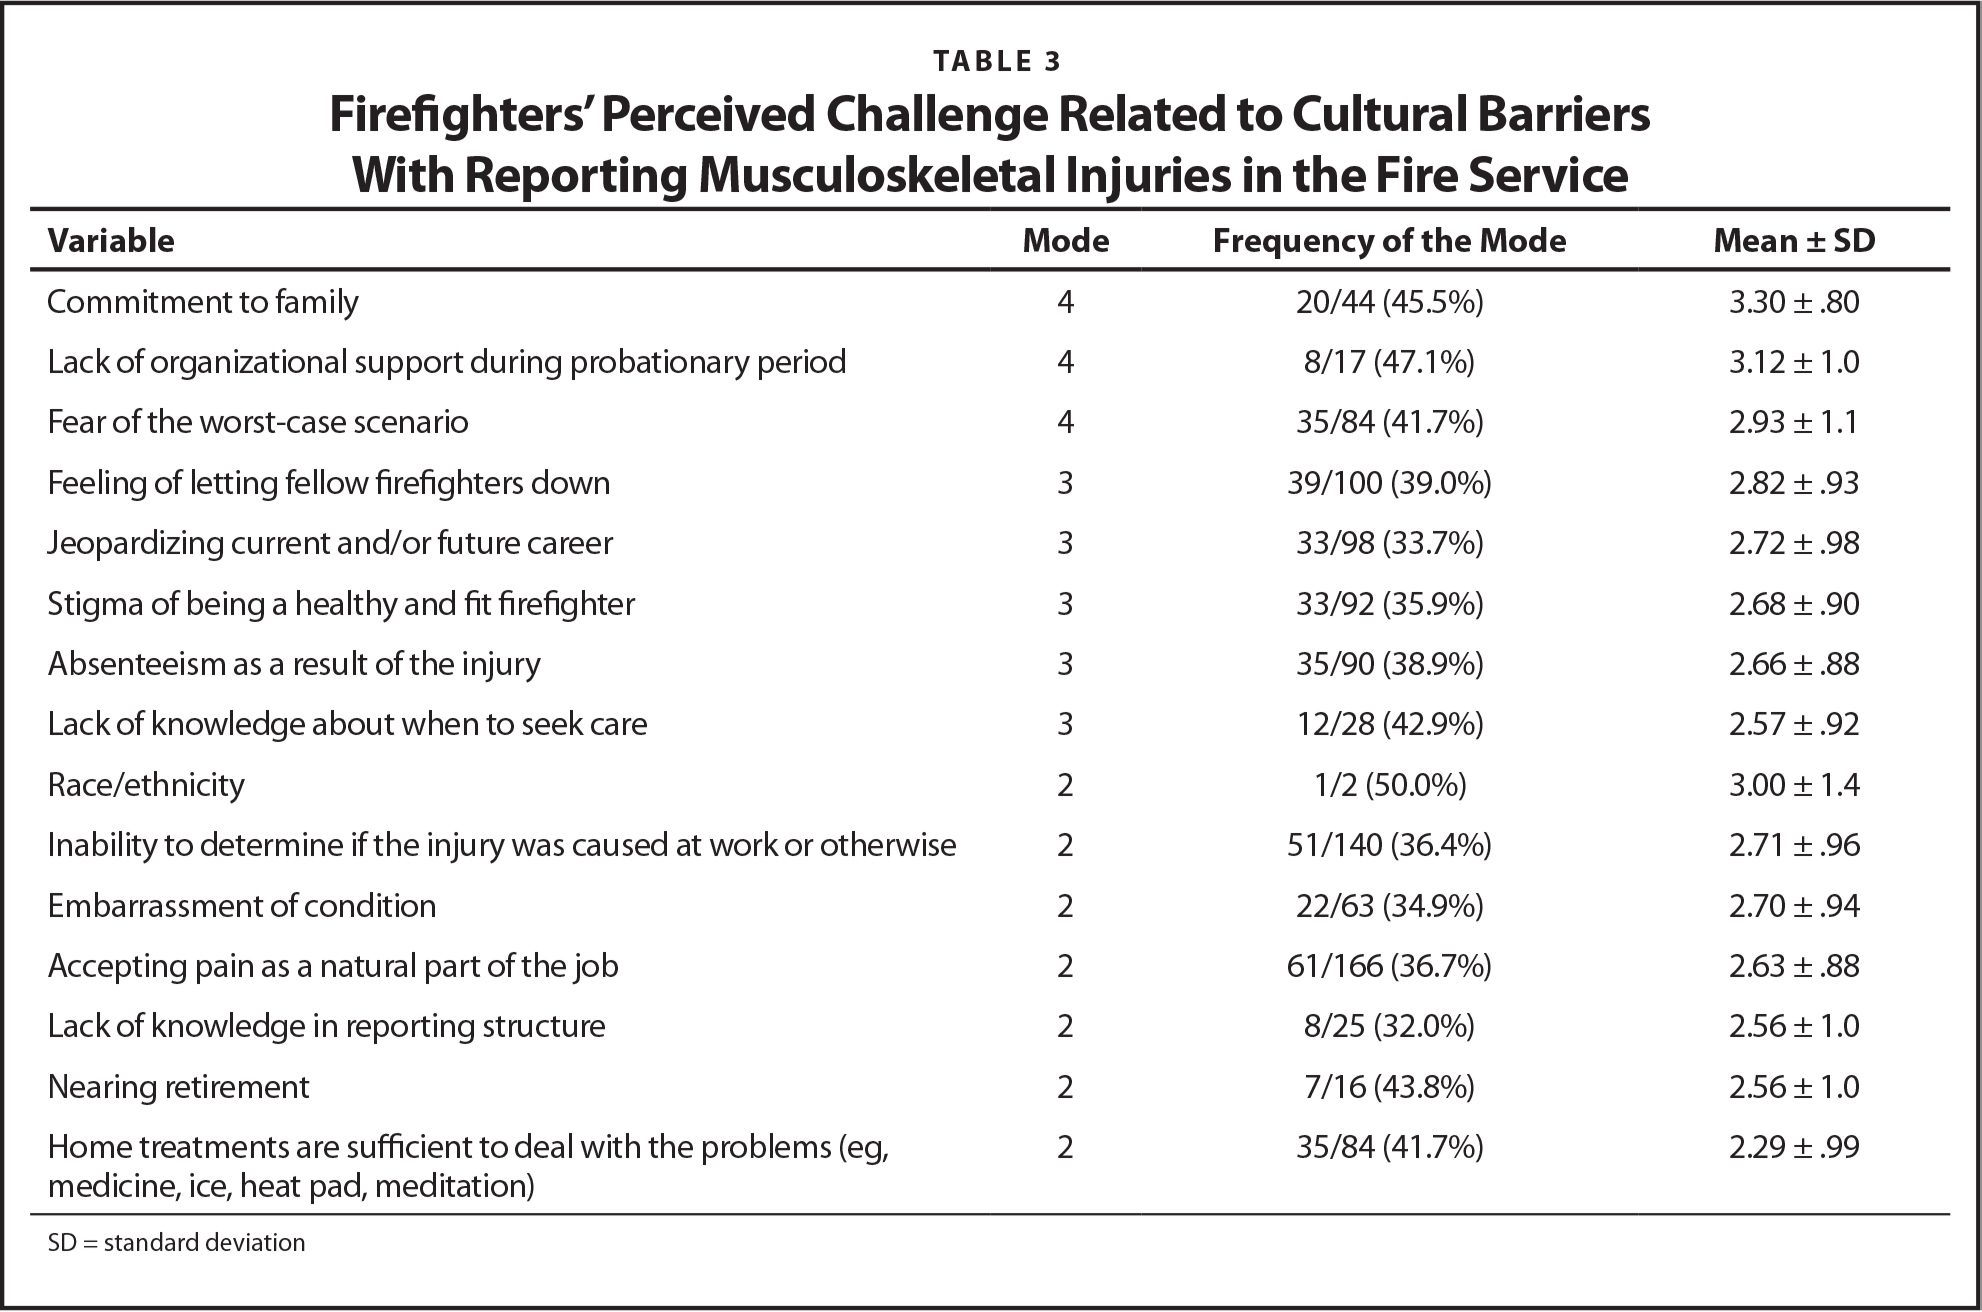 Firefighters' Perceived Challenge Related to Cultural Barriers With Reporting Musculoskeletal Injuries in the Fire Service